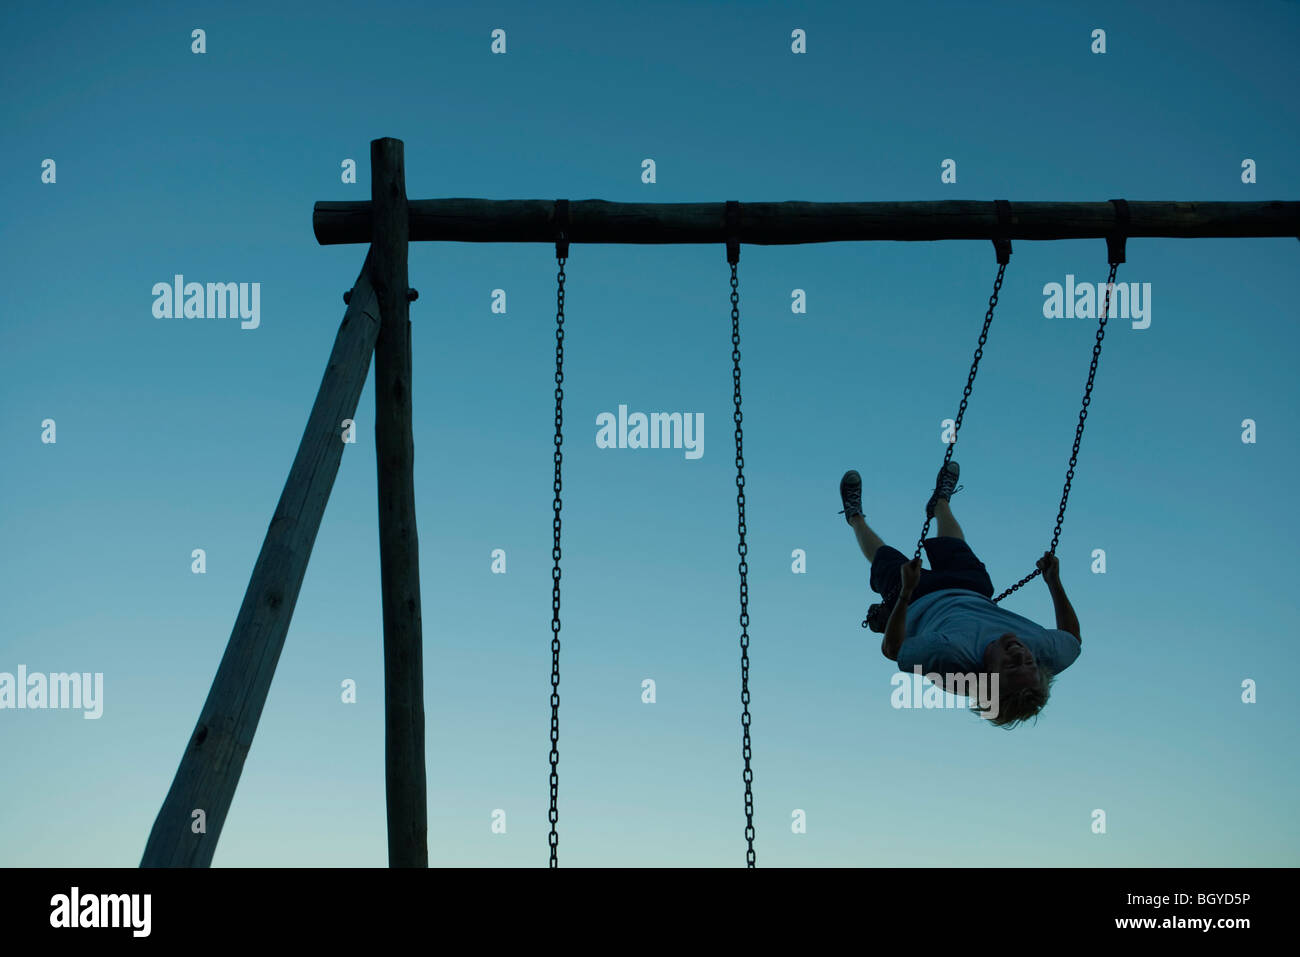 Young man swinging on swing set, backlit - Stock Image